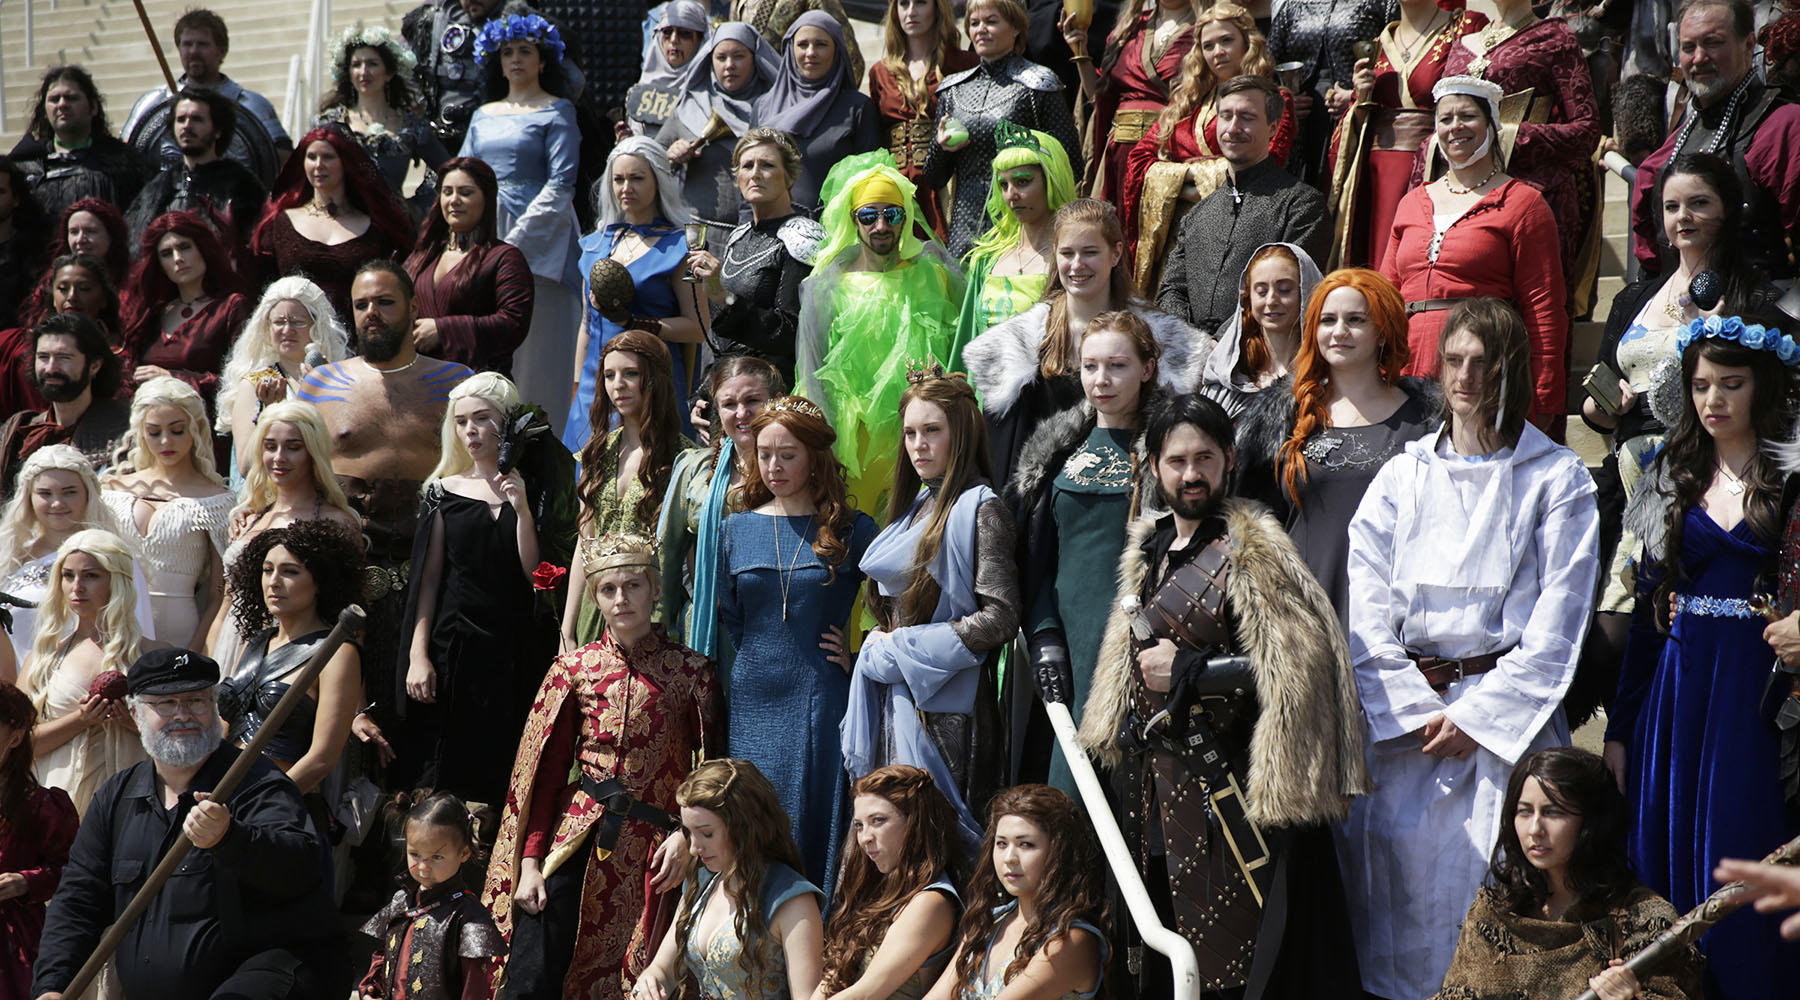 The biggest army of GoT cosplayers in any kingdom